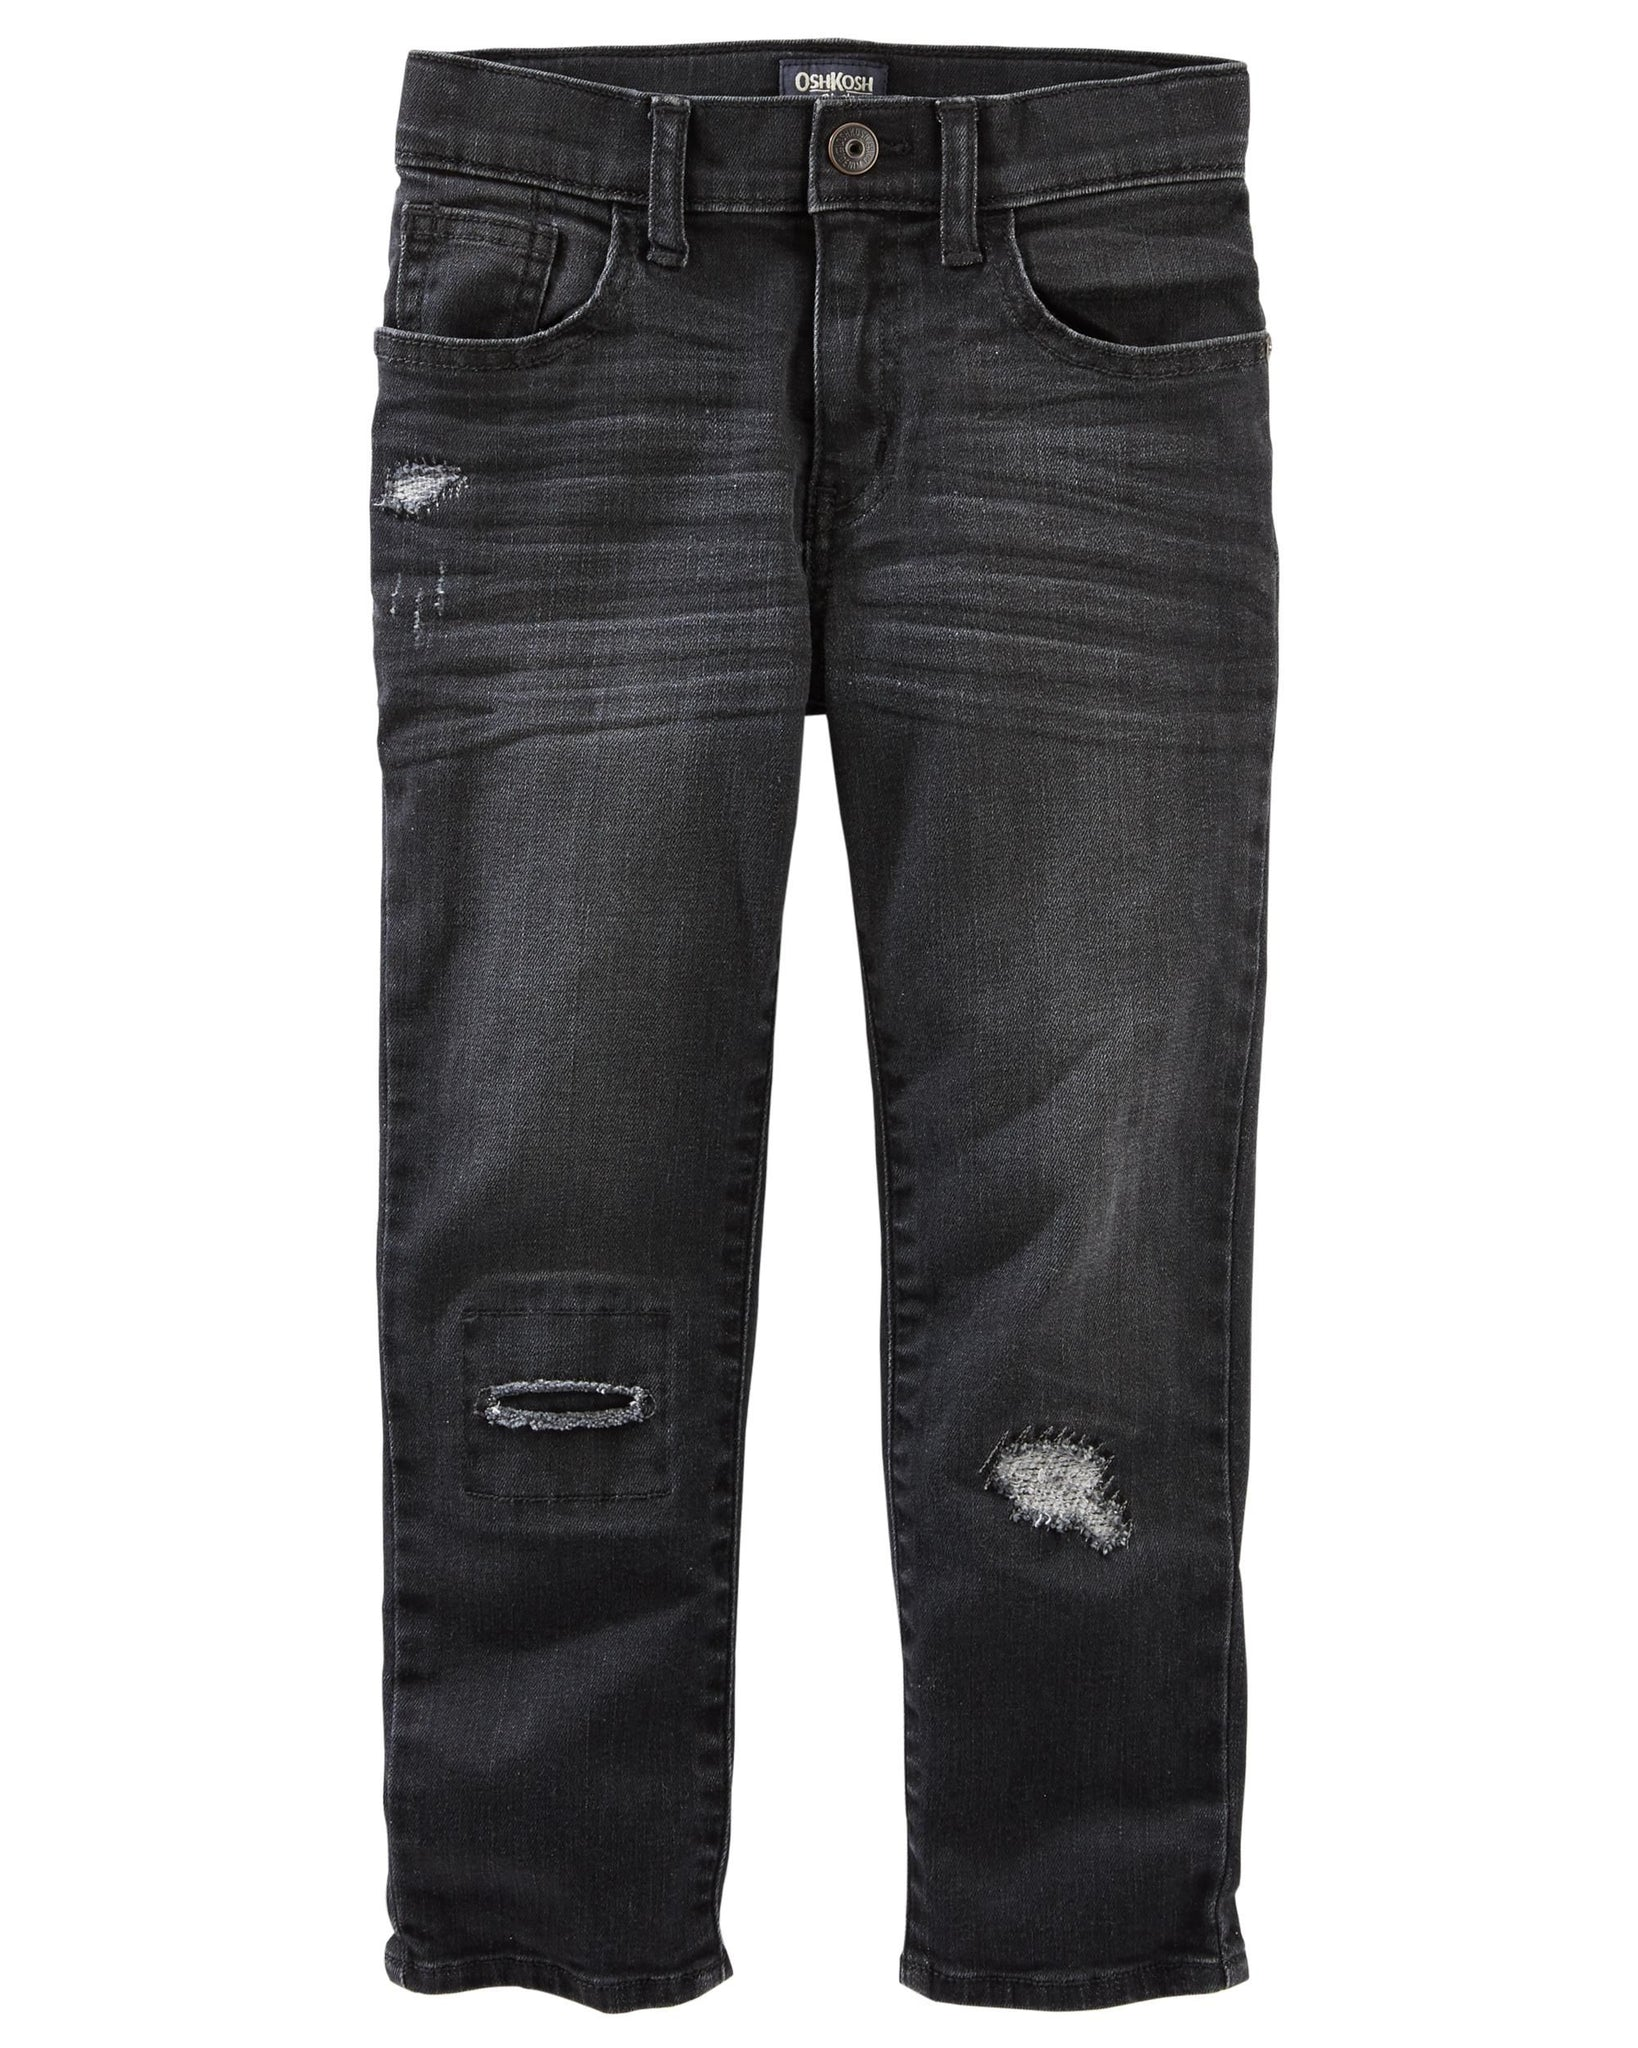 Slim Stretch Jeans - Asteroid Grey Wash